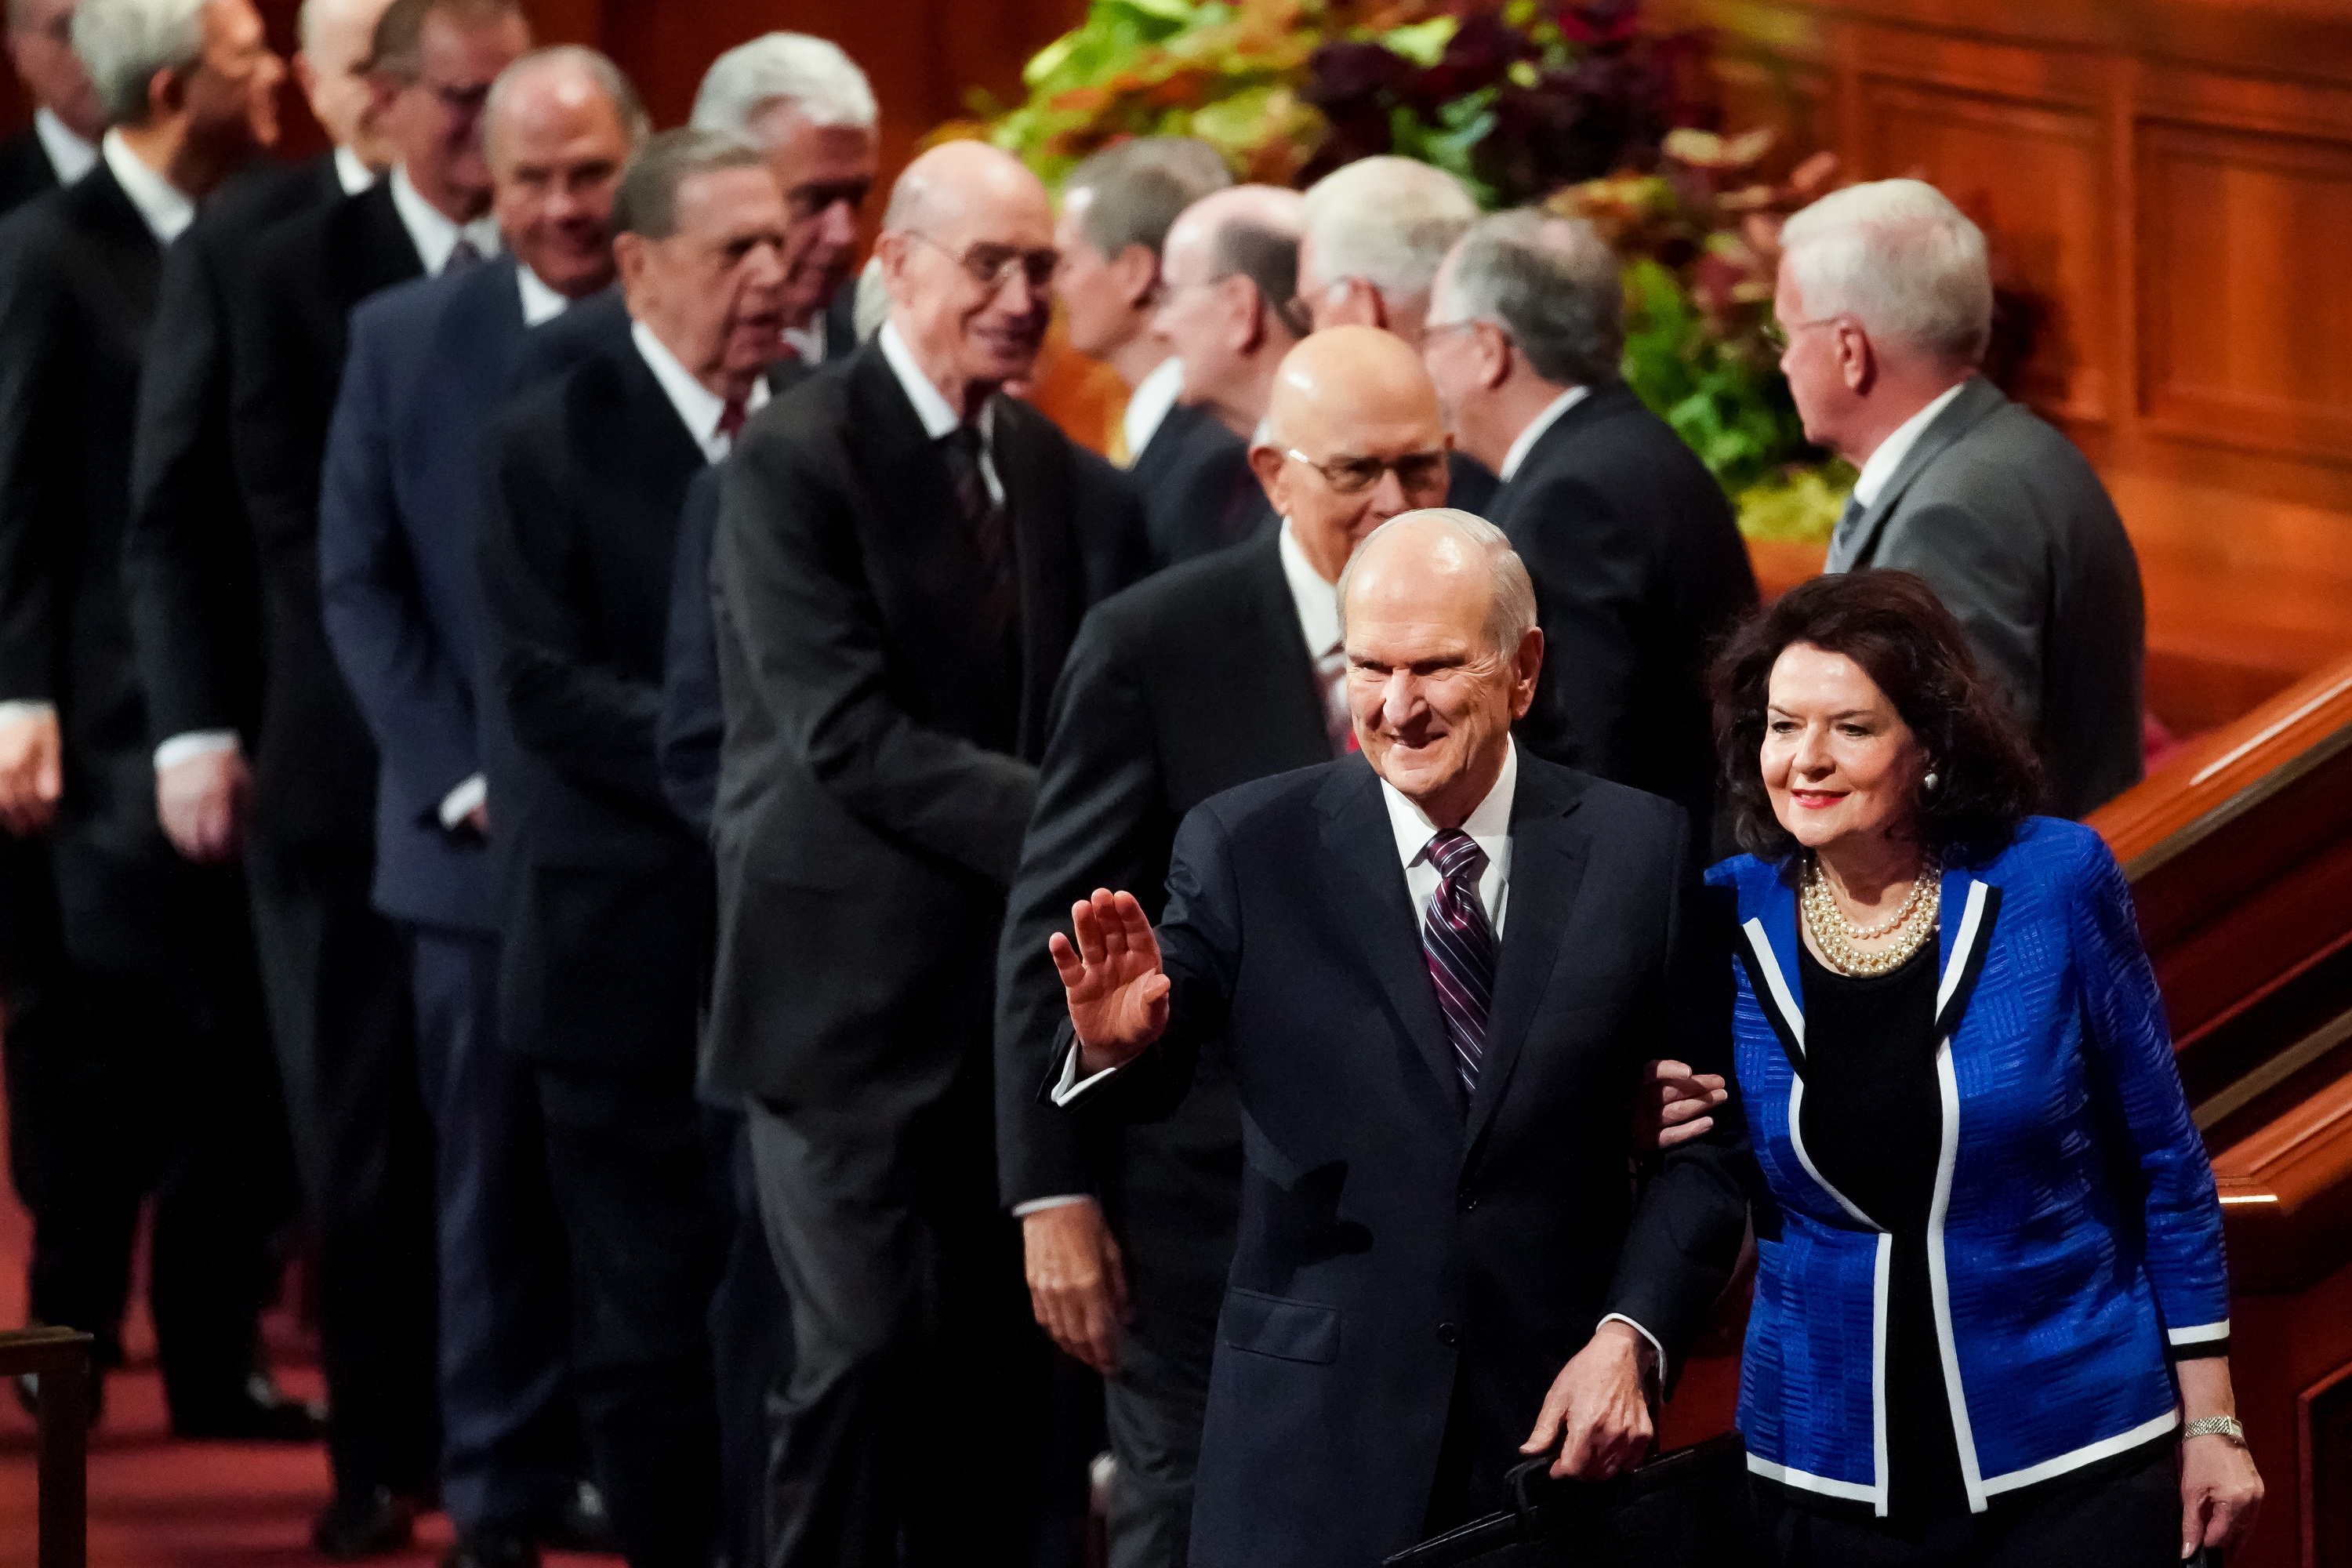 President Russell M. Nelson waves as he and his wife, Sister Wendy Nelson, exit at the conclusion of the Saturday morning session of the 189th Semiannual General Conference of The Church of Jesus Christ of Latter-day Saints in the Conference Center in Salt Lake City on Saturday, Oct. 5, 2019.